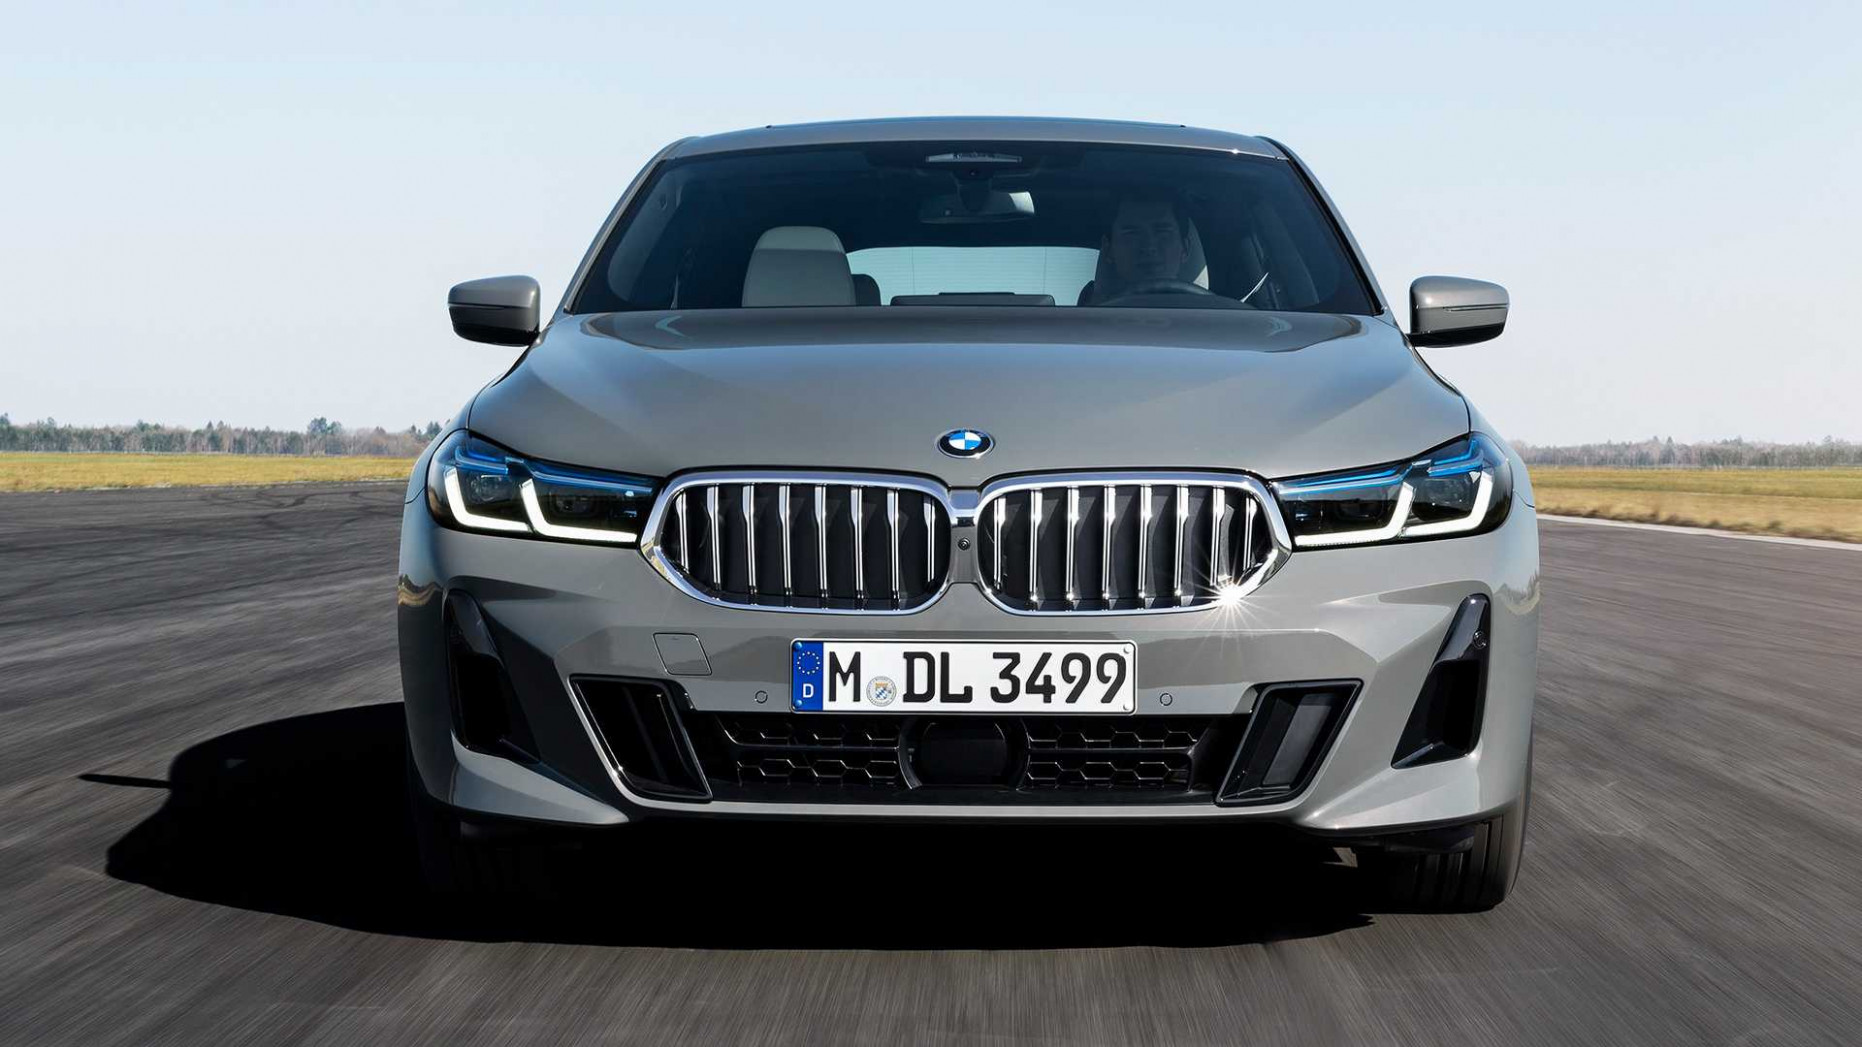 BMW Looks To Cut 7,7 Jobs To Reduce Costs (And Struggles To Do So) - bmw jobs 2020